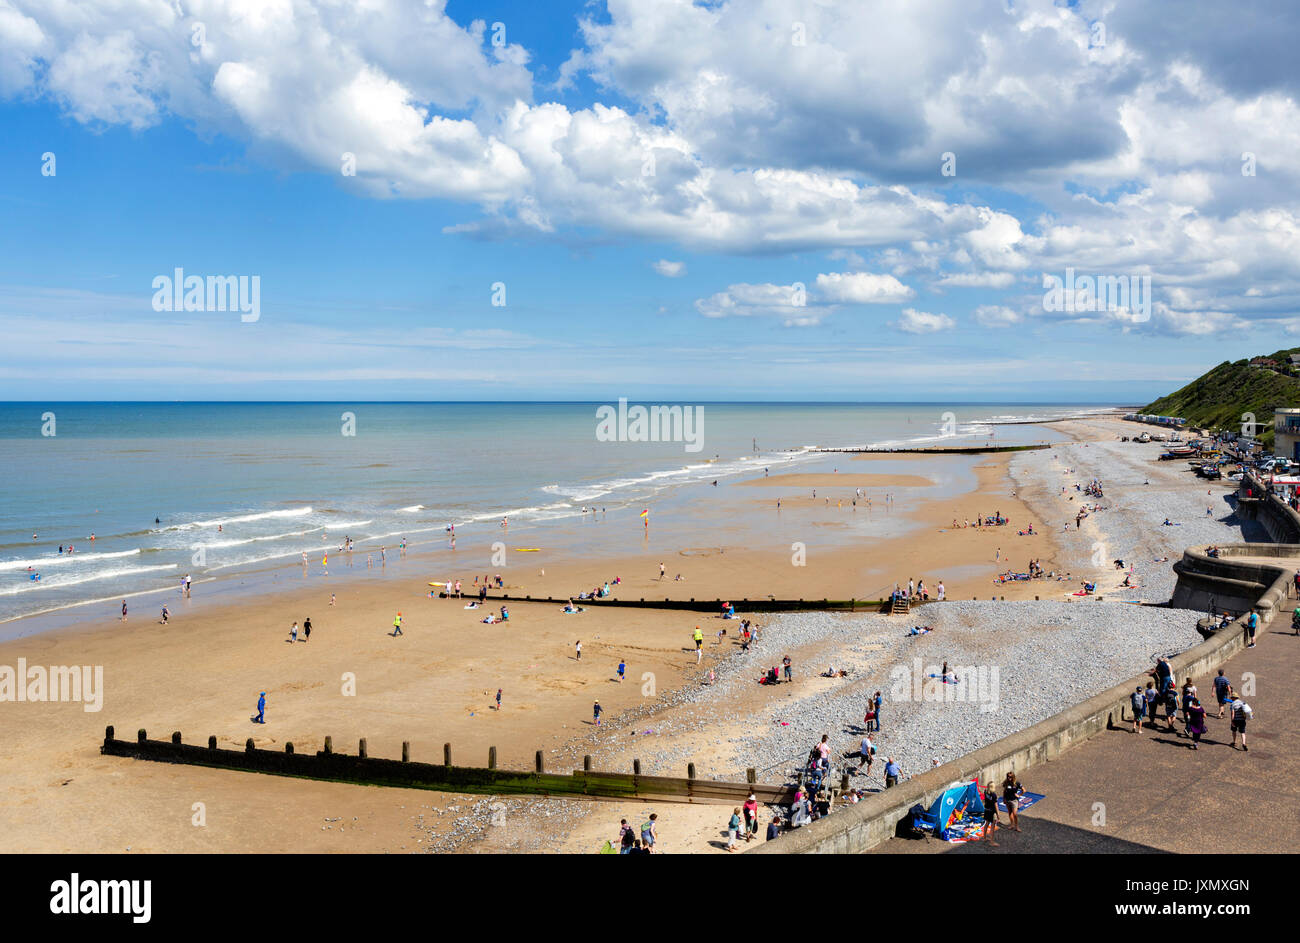 Cromer Beach, Norfolk, England, UK - Stock Image